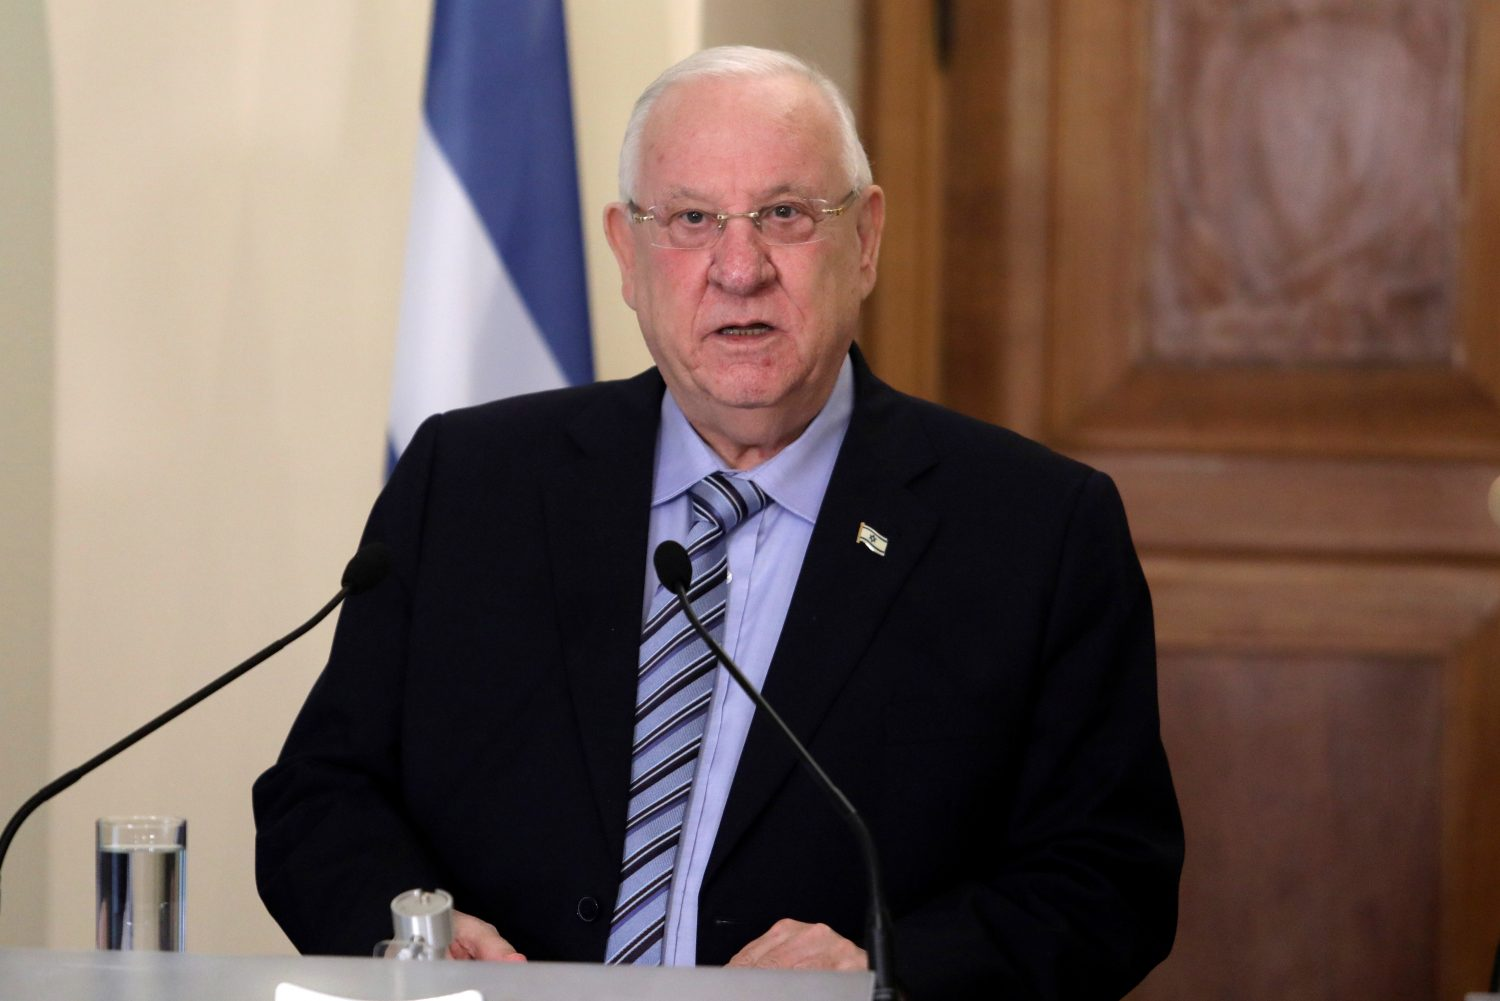 FILE PHOTO: Israeli President Reuven Rivlin talks during a press conference at the Presidential Palace in Nicosia, Cyprus February 12, 2019. REUTERS/Yiannis Kourtoglou